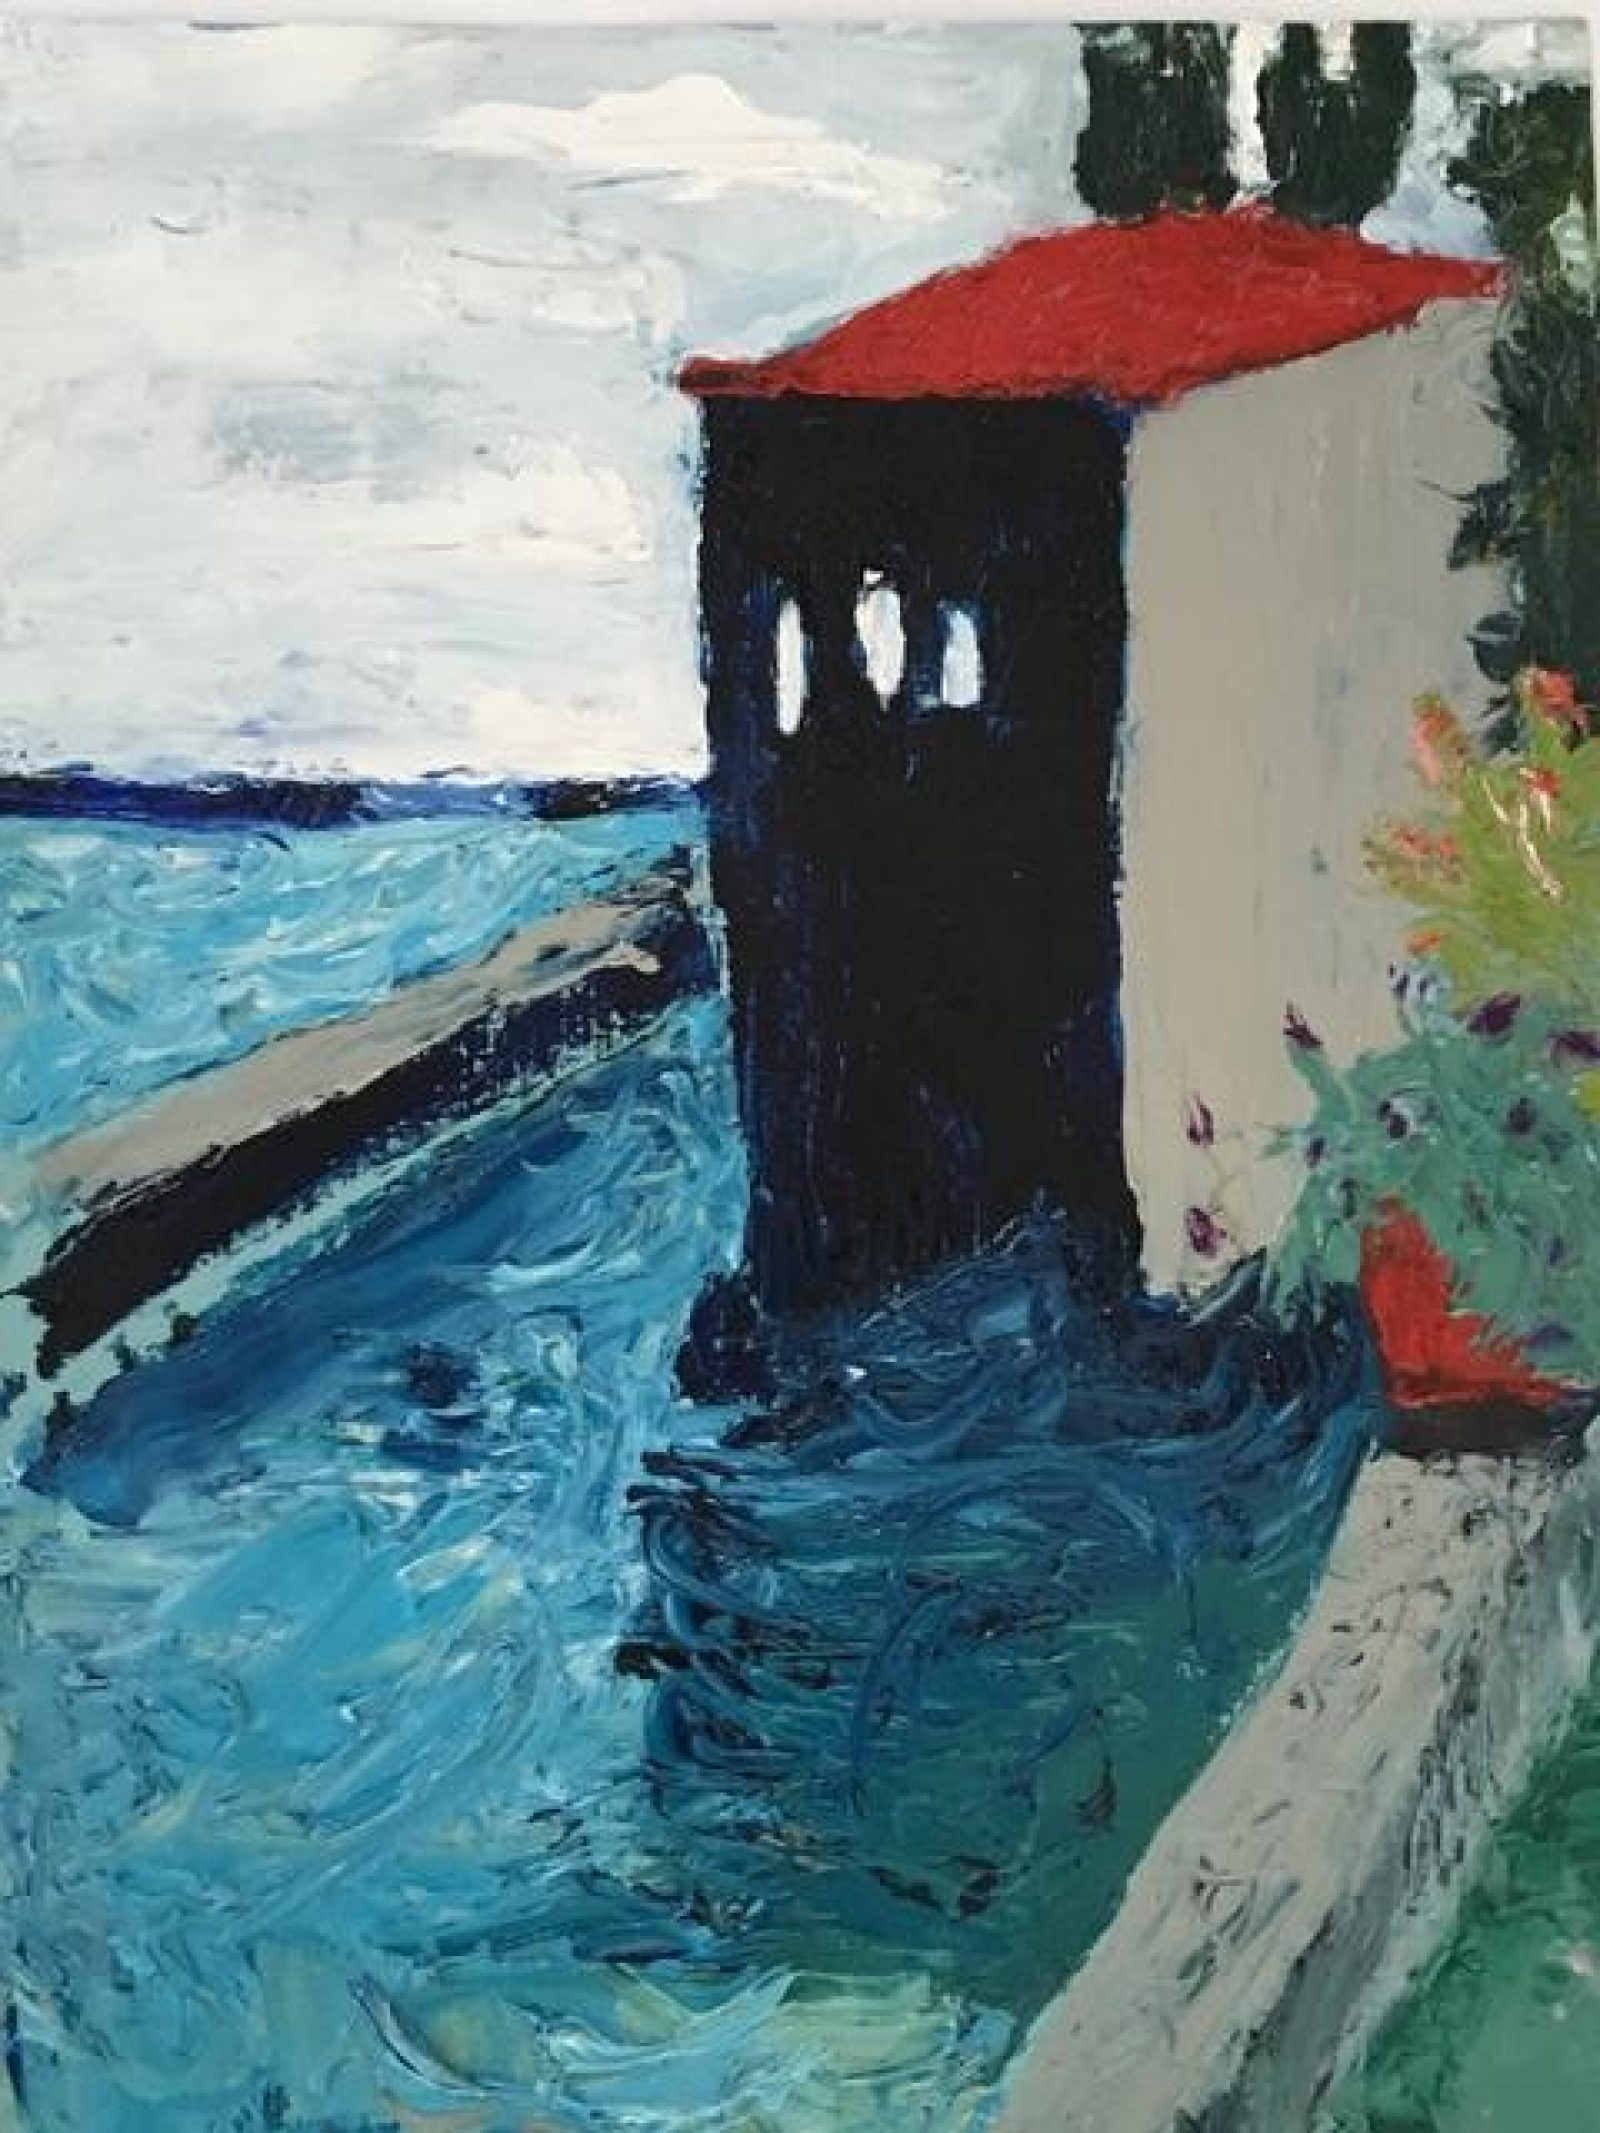 Water, Light and Land, Kath Wellman. Image: Supplied by the artist